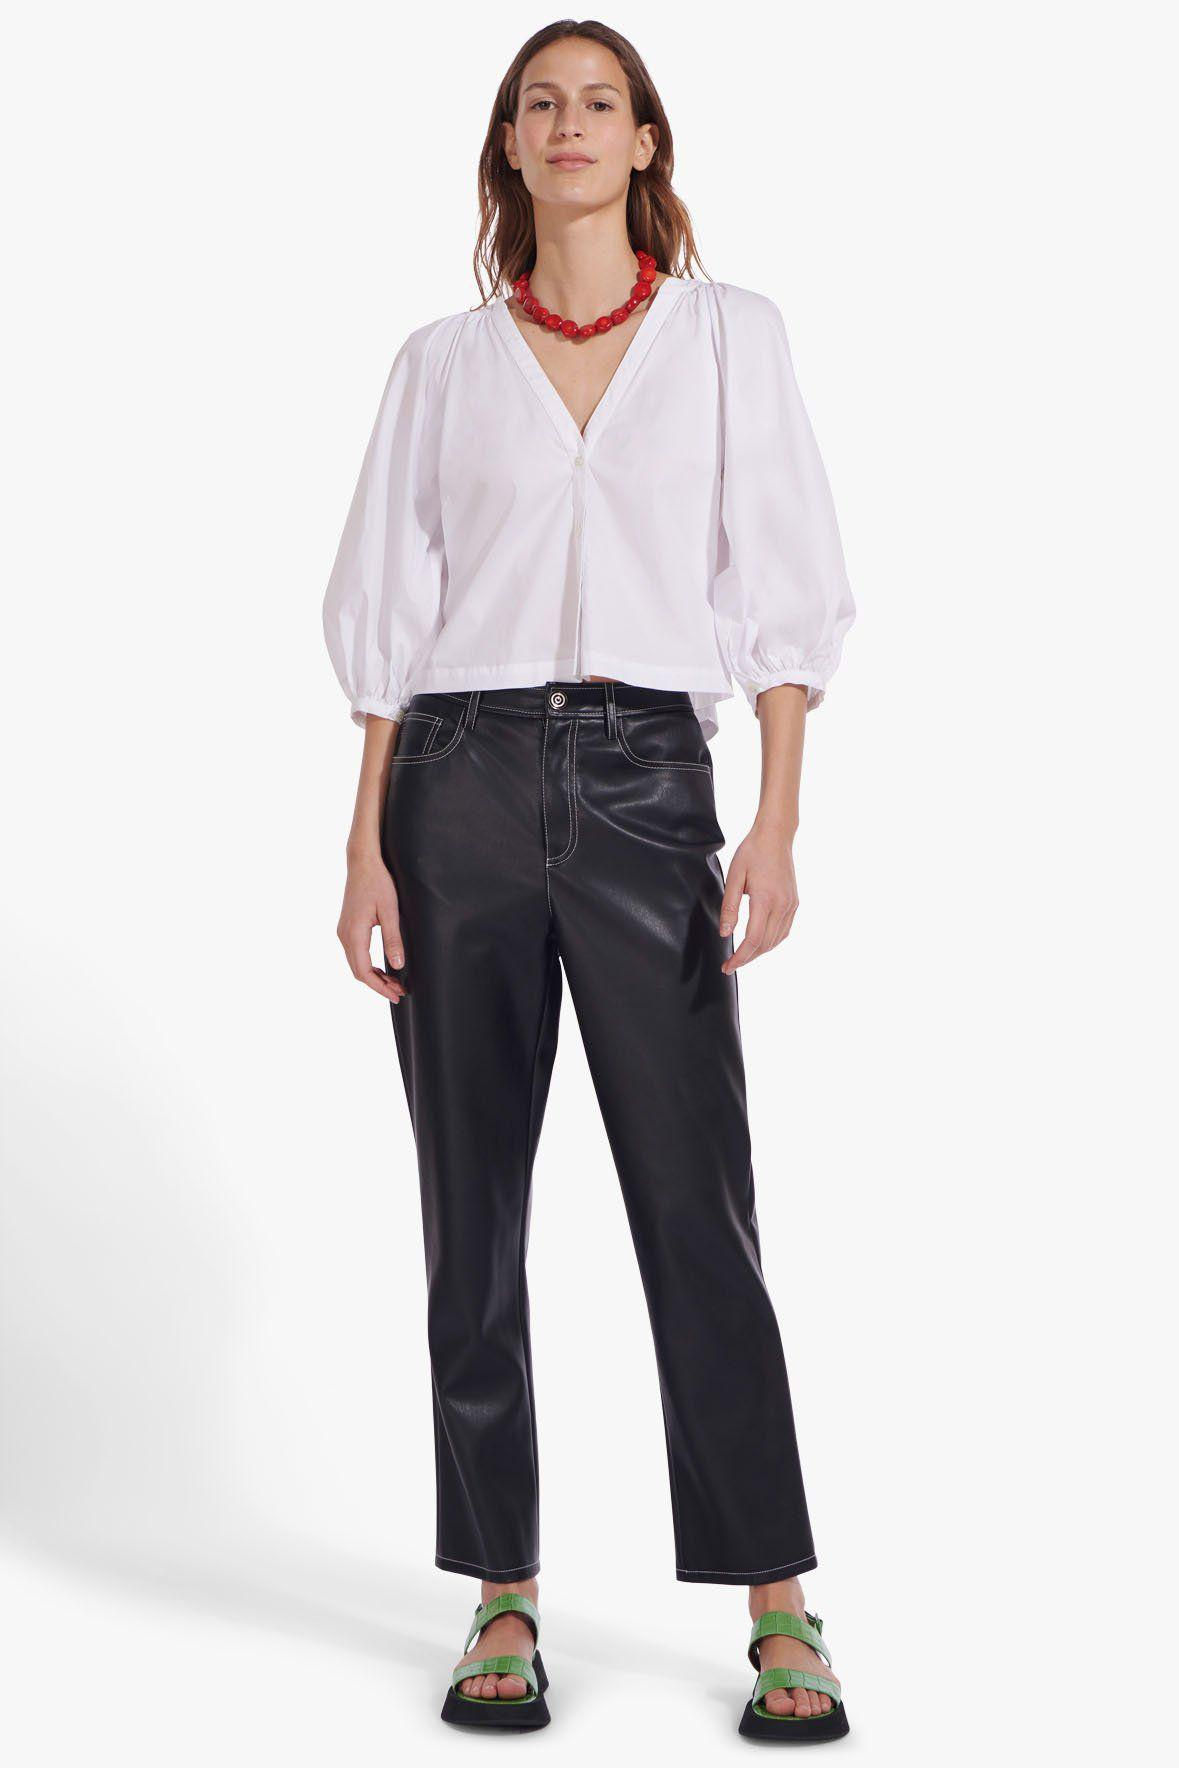 DILL TOP | WHITE 1